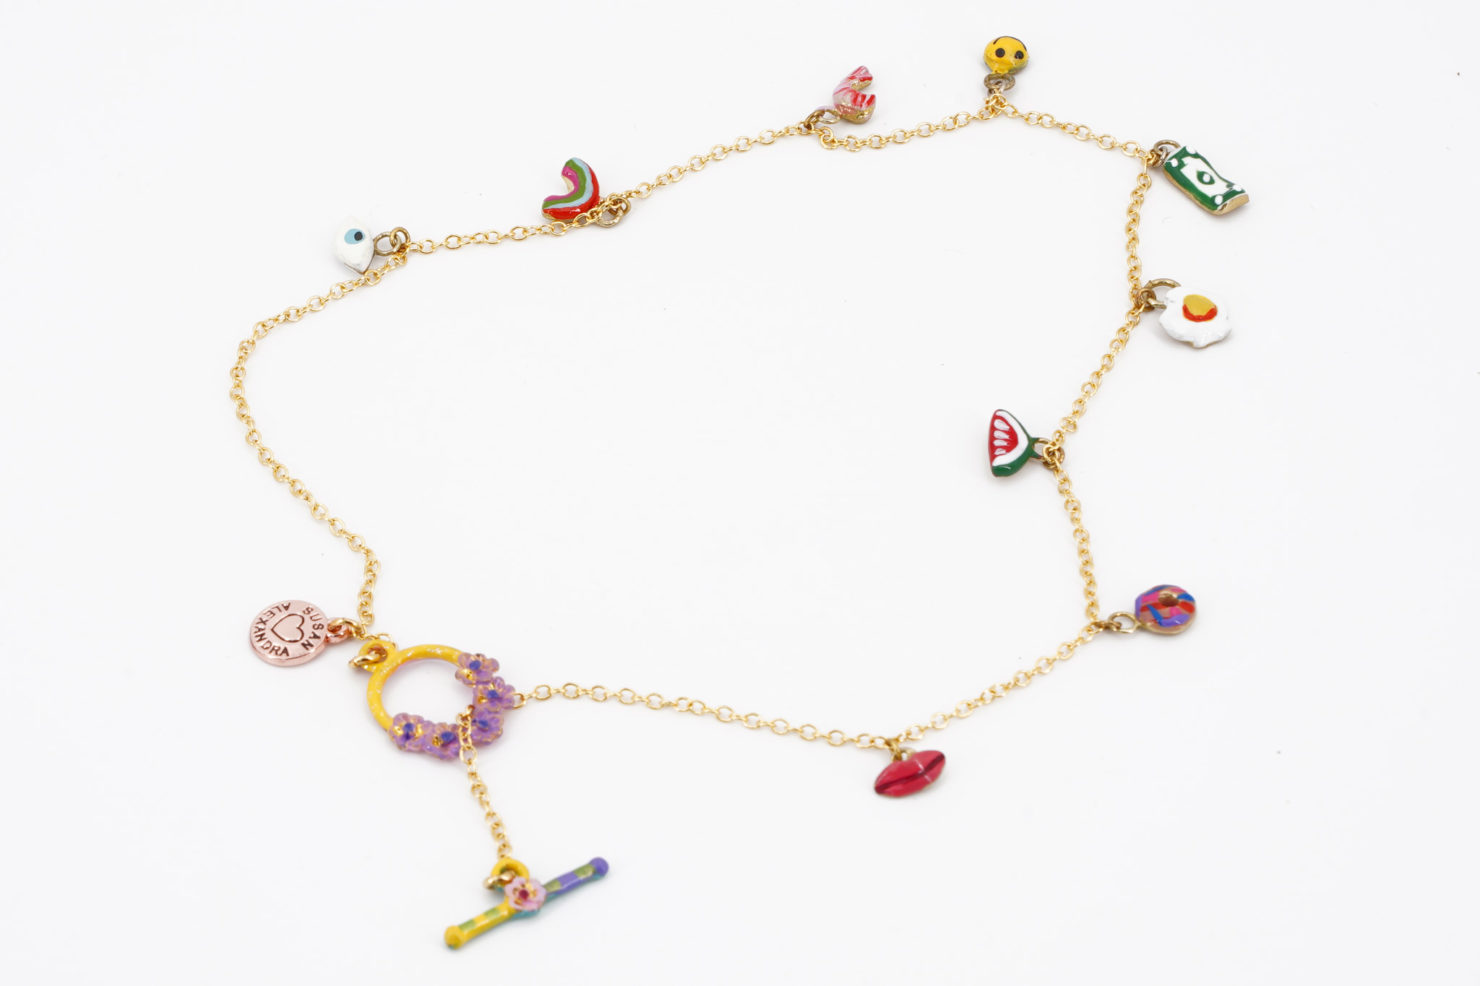 TIINY JOYS 9 CHARMS NECKLACE - SUSAN ALEXANDRA